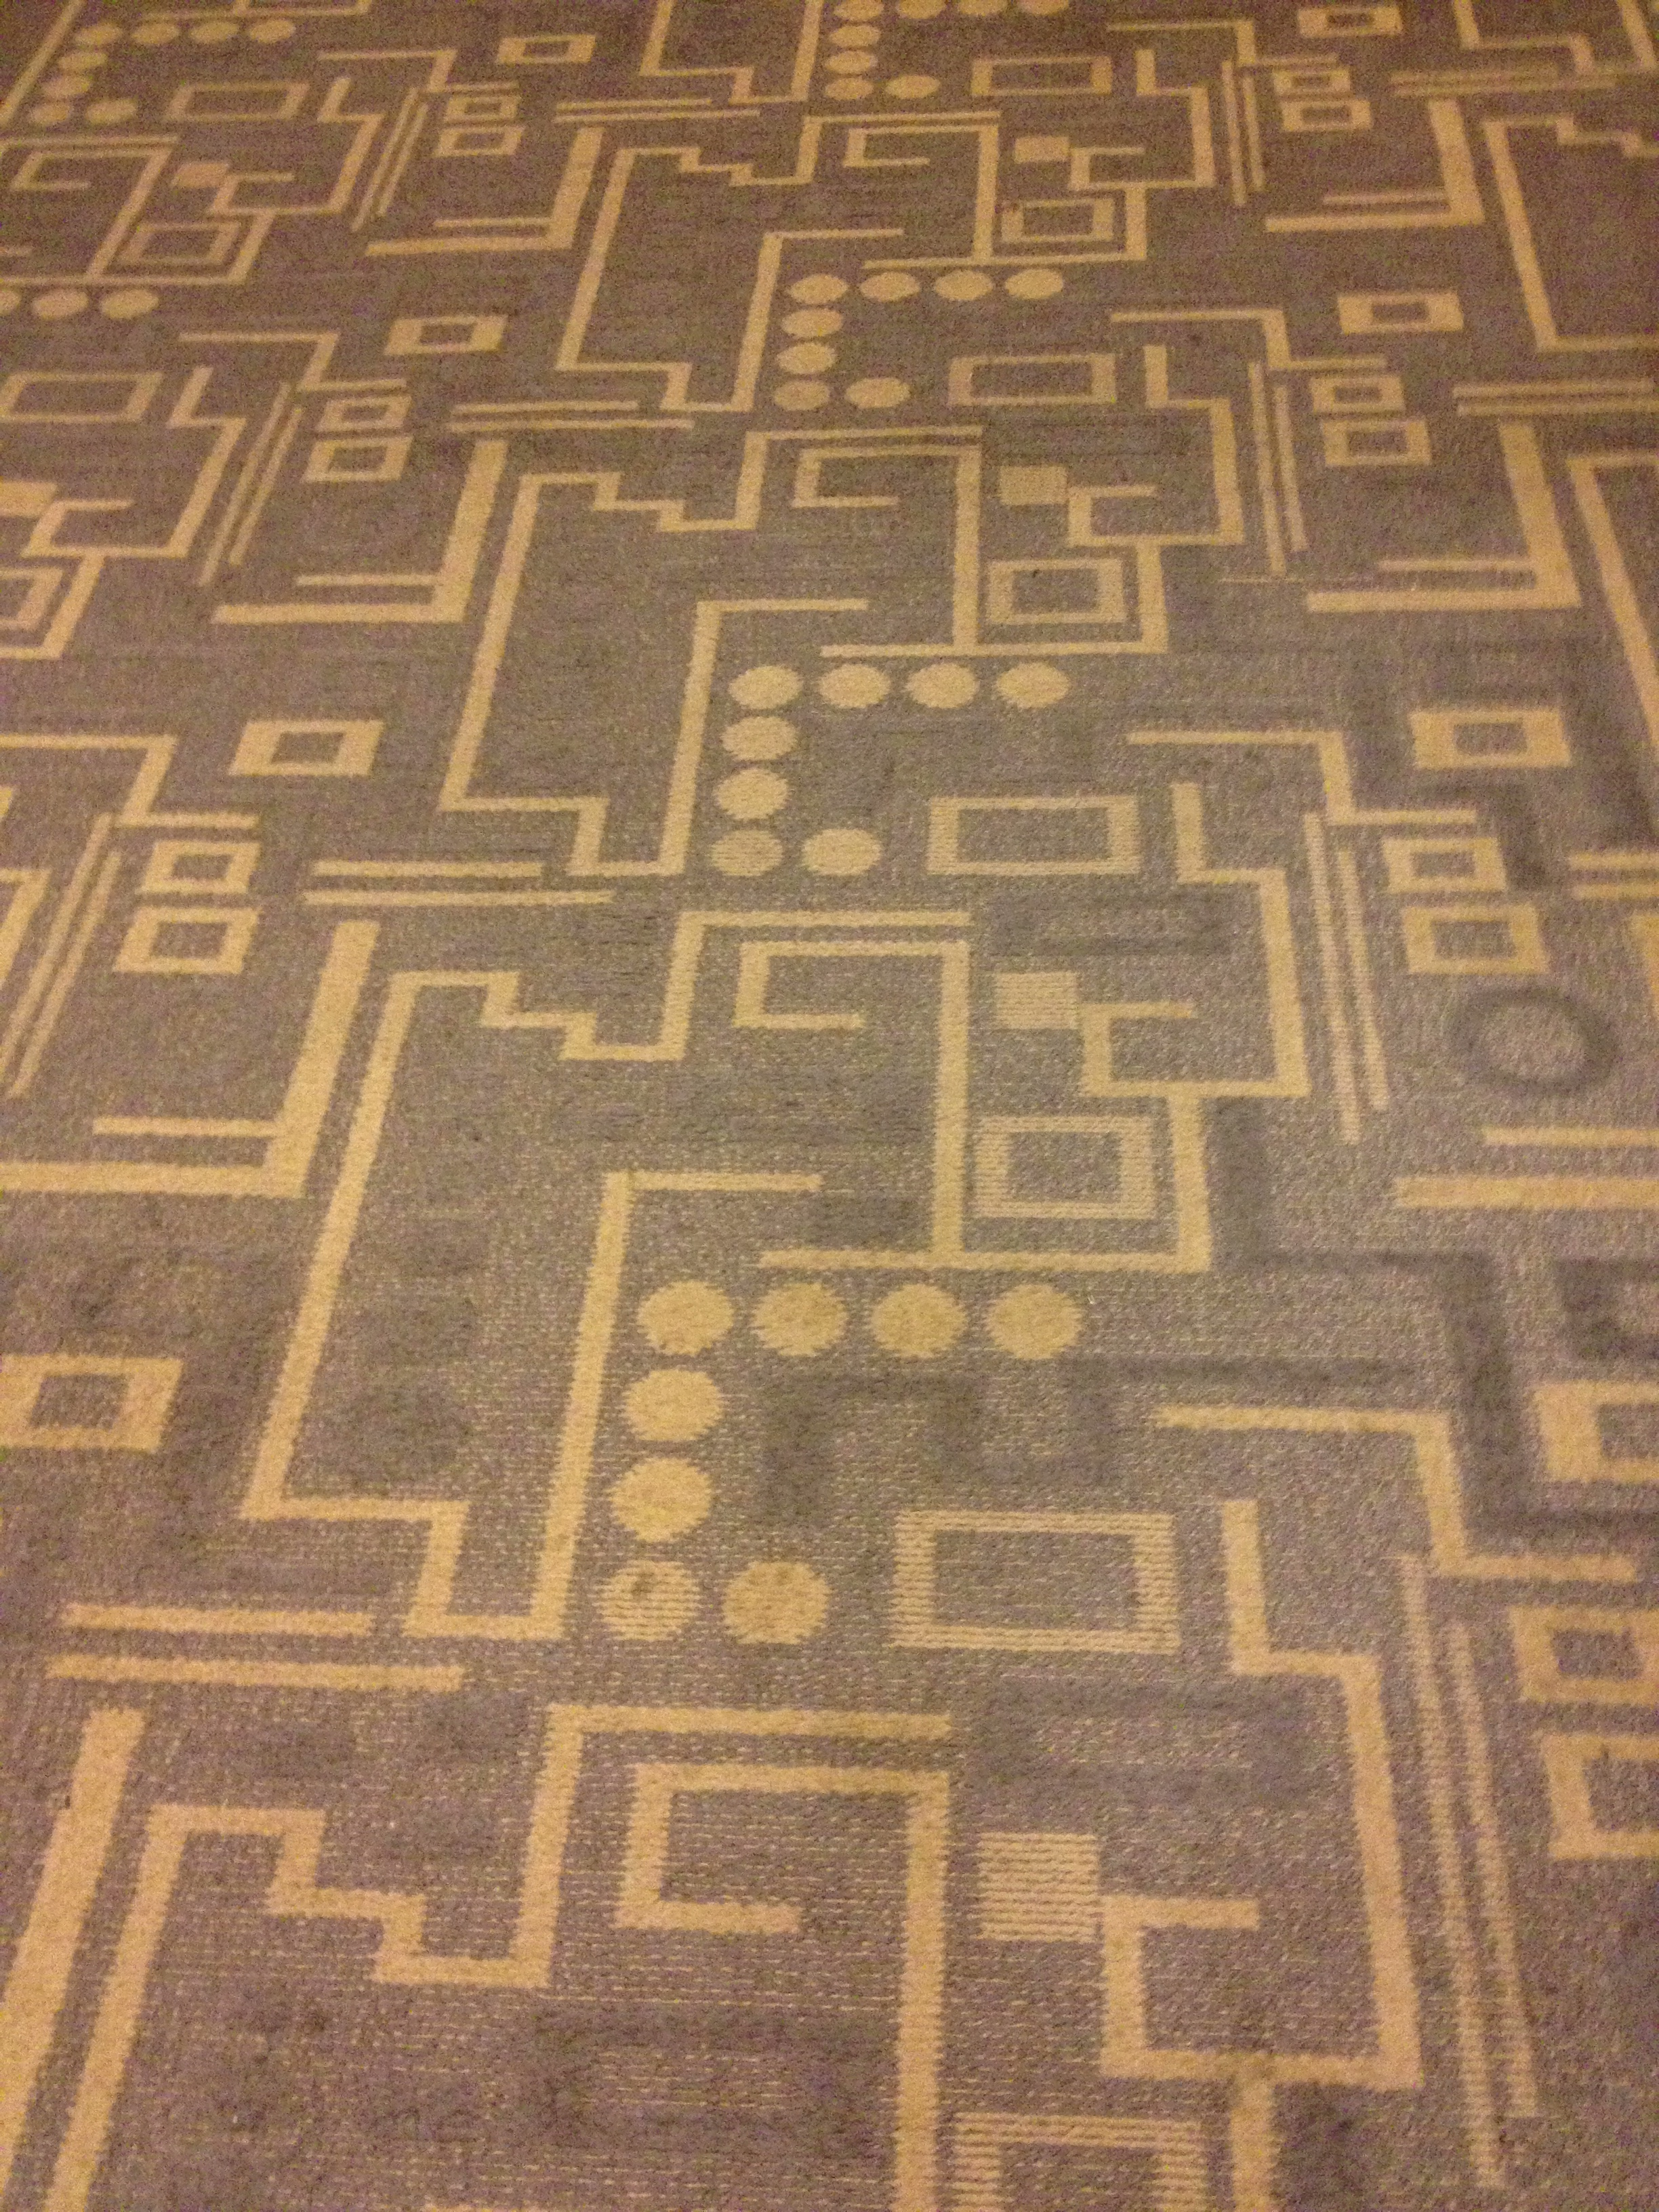 Circuit Board Carpet